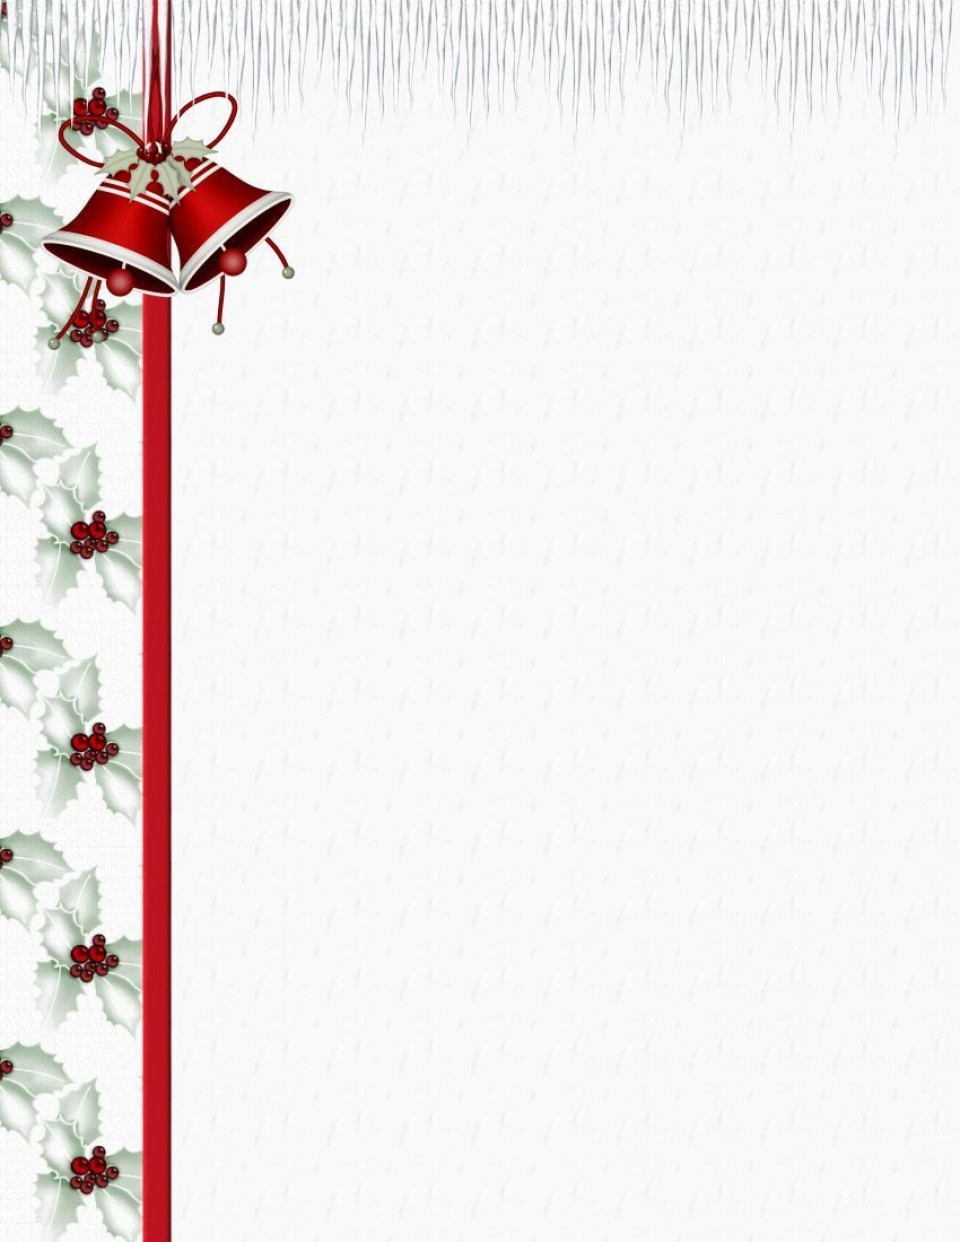 000 Beautiful Christma Stationery Template Word Free Picture  Religiou For Downloadable960